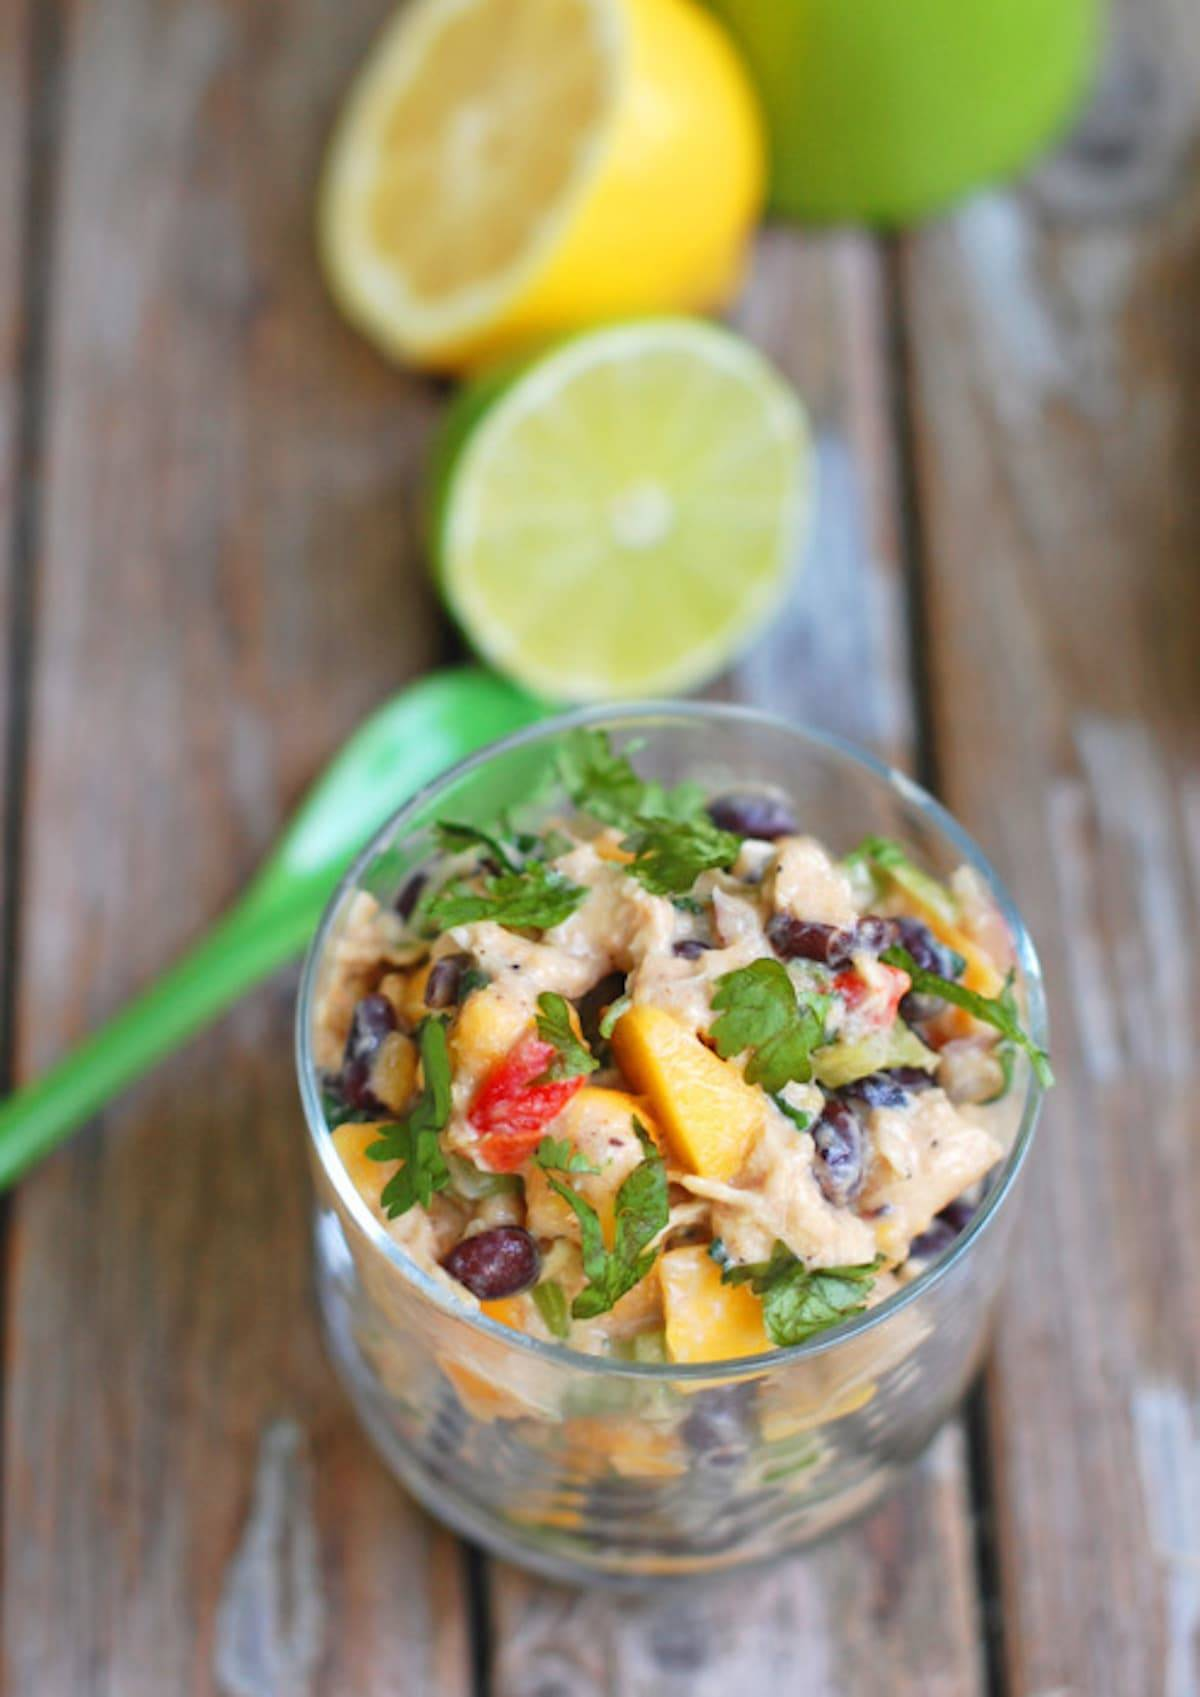 Mango chicken salad in a glass dish with lemons and limes.